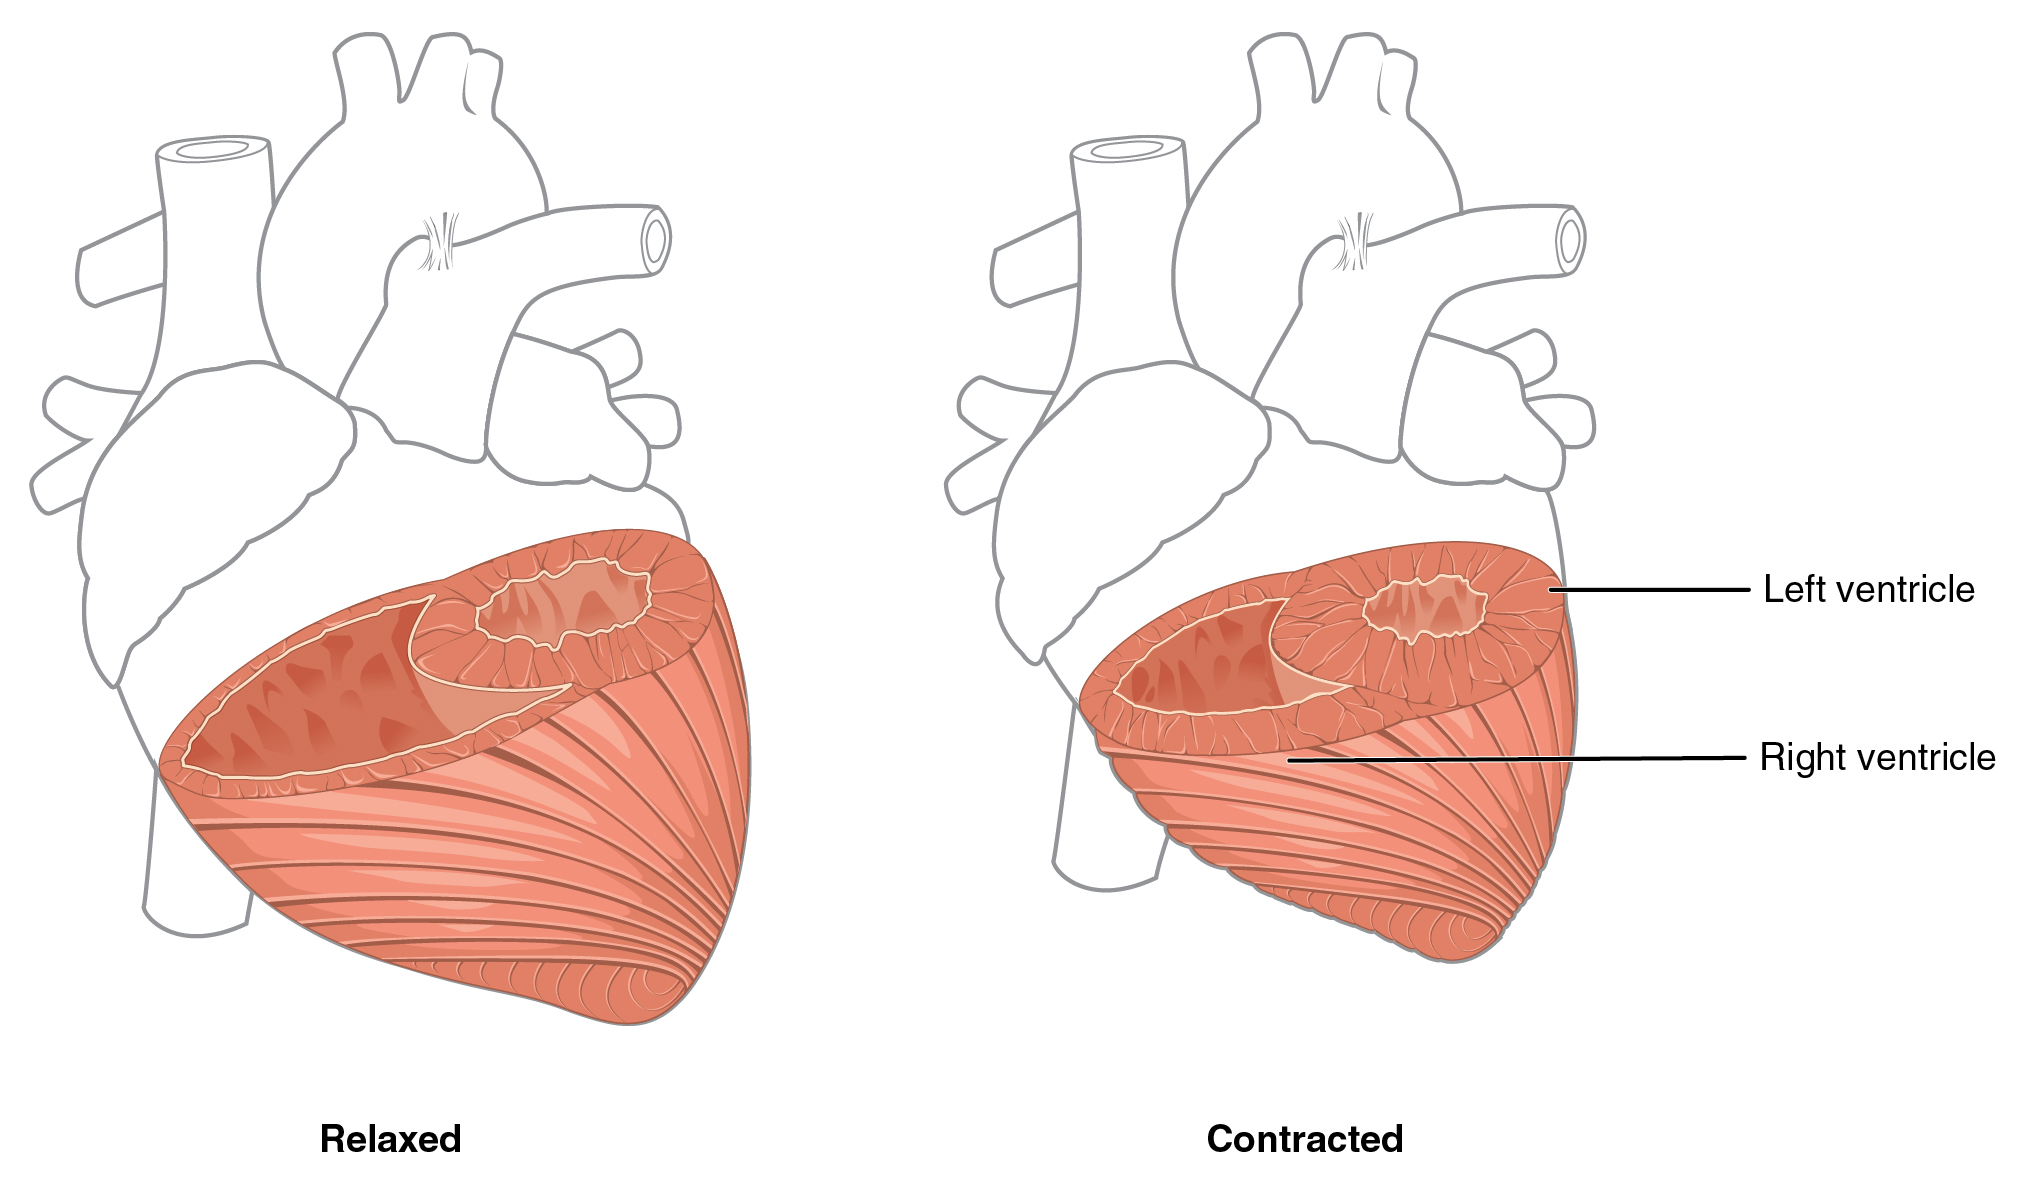 Right ventricle heart anatomy by openstax page 479 quizover differences in ventricular muscle thickness ccuart Choice Image